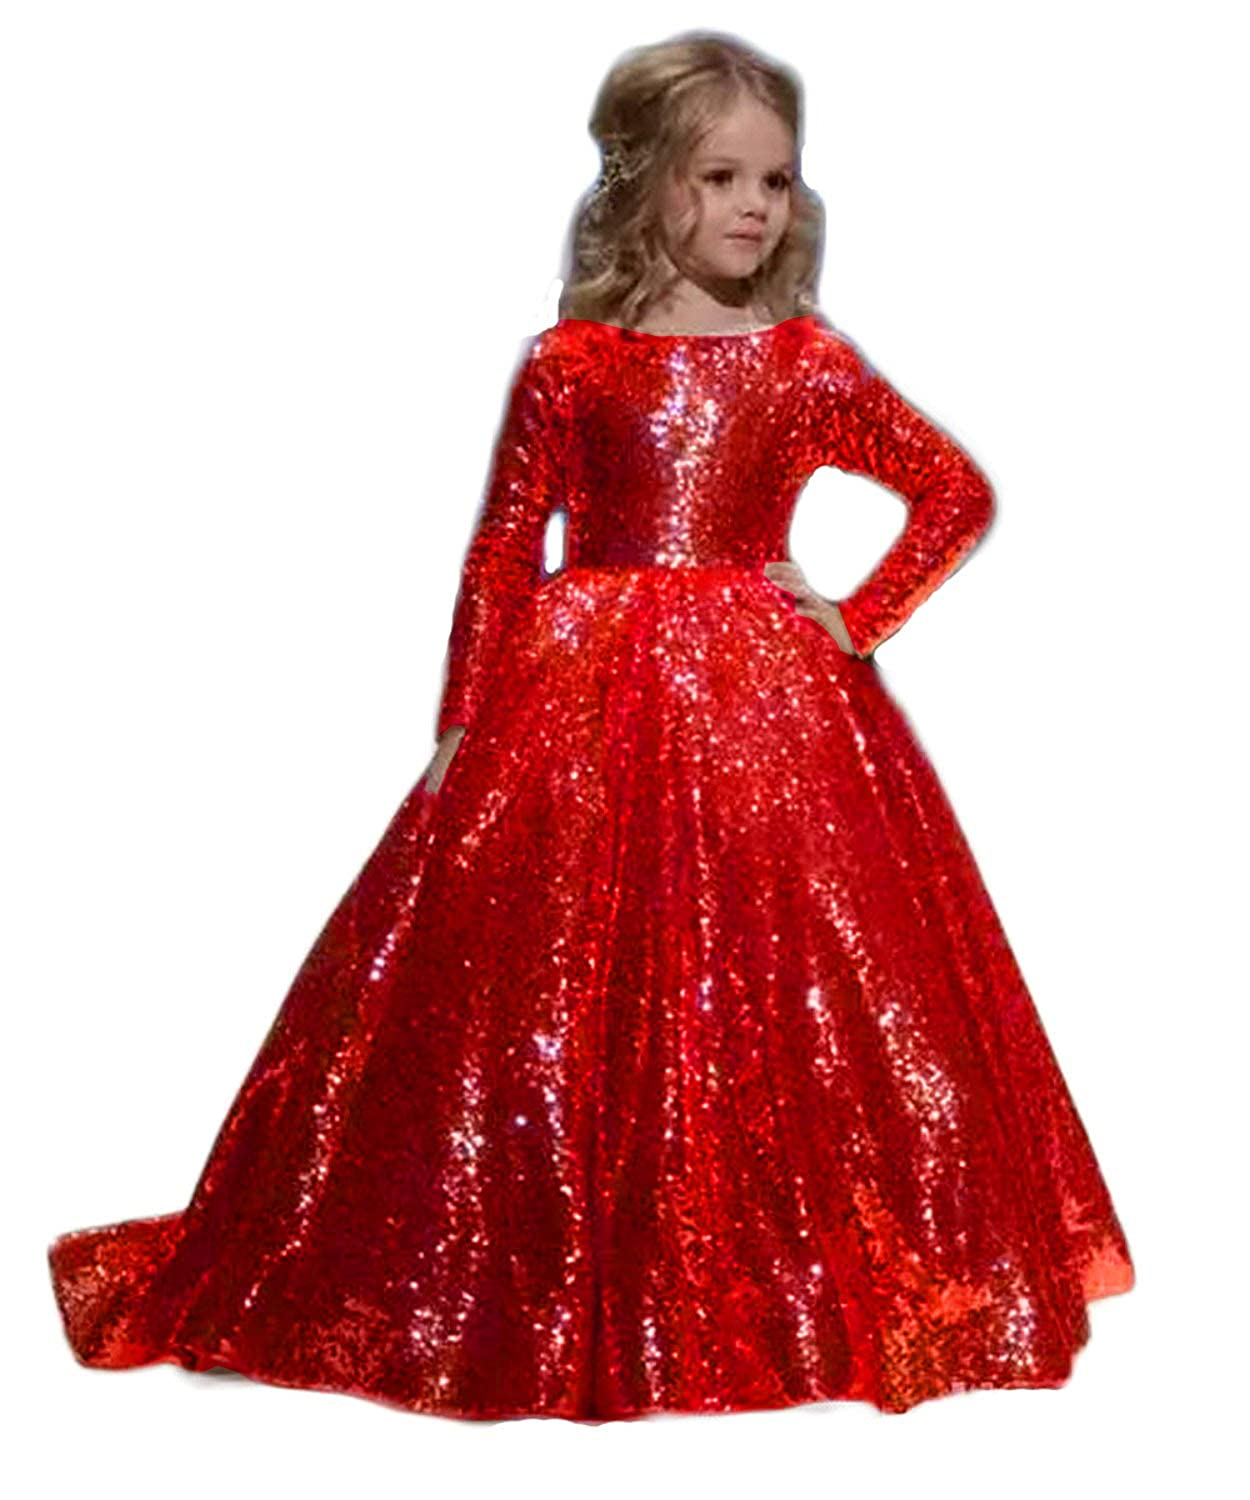 c7ad58d0d37 Prom And Pageant Dress Stores Near Me - Gomes Weine AG